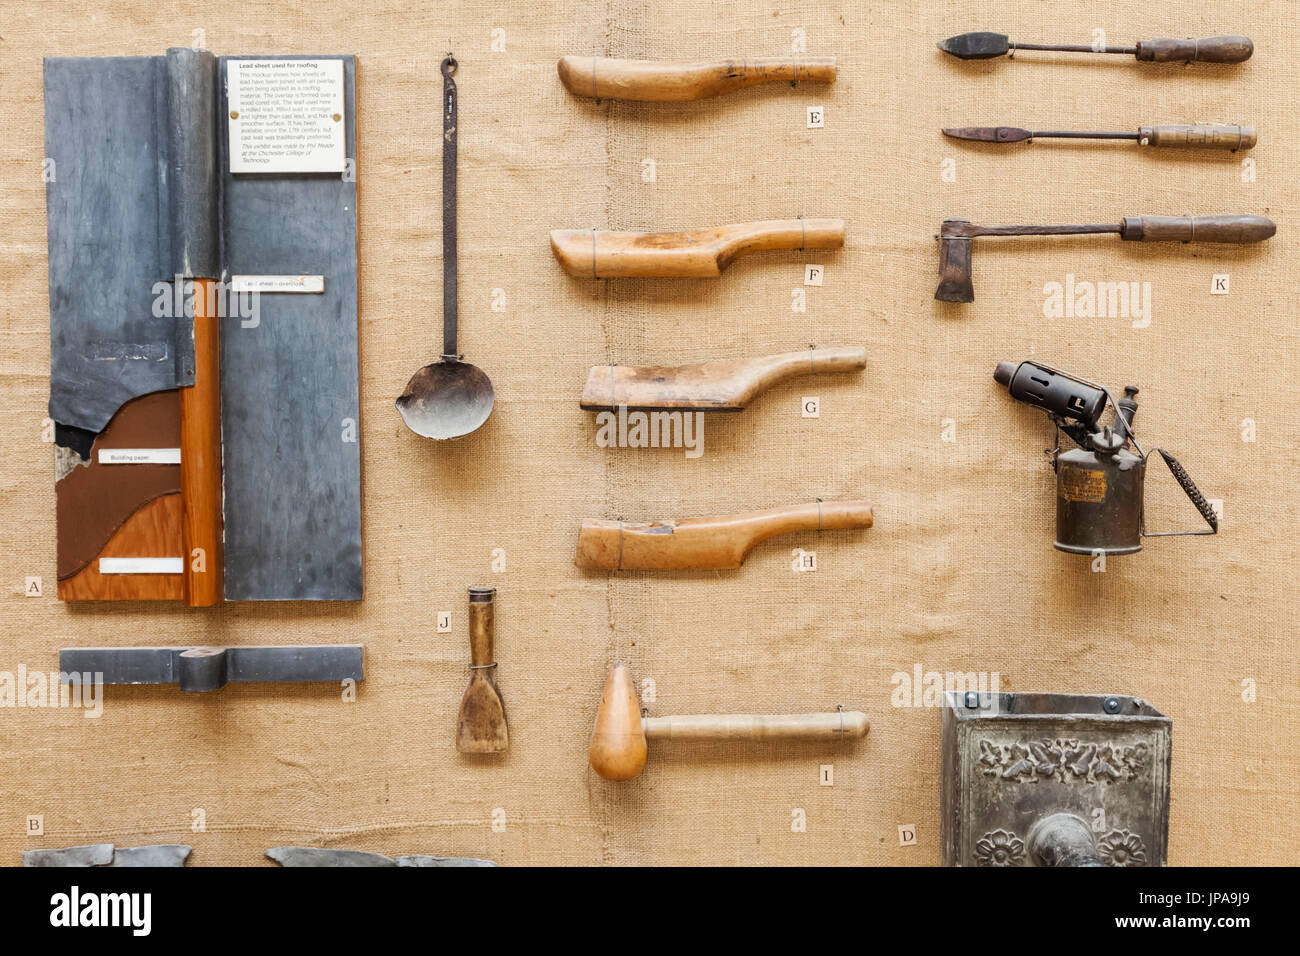 England, West Sussex, Singleton, Weald and Downland Open Air Museum, Display of Historical Plumbers Tools - Stock Image